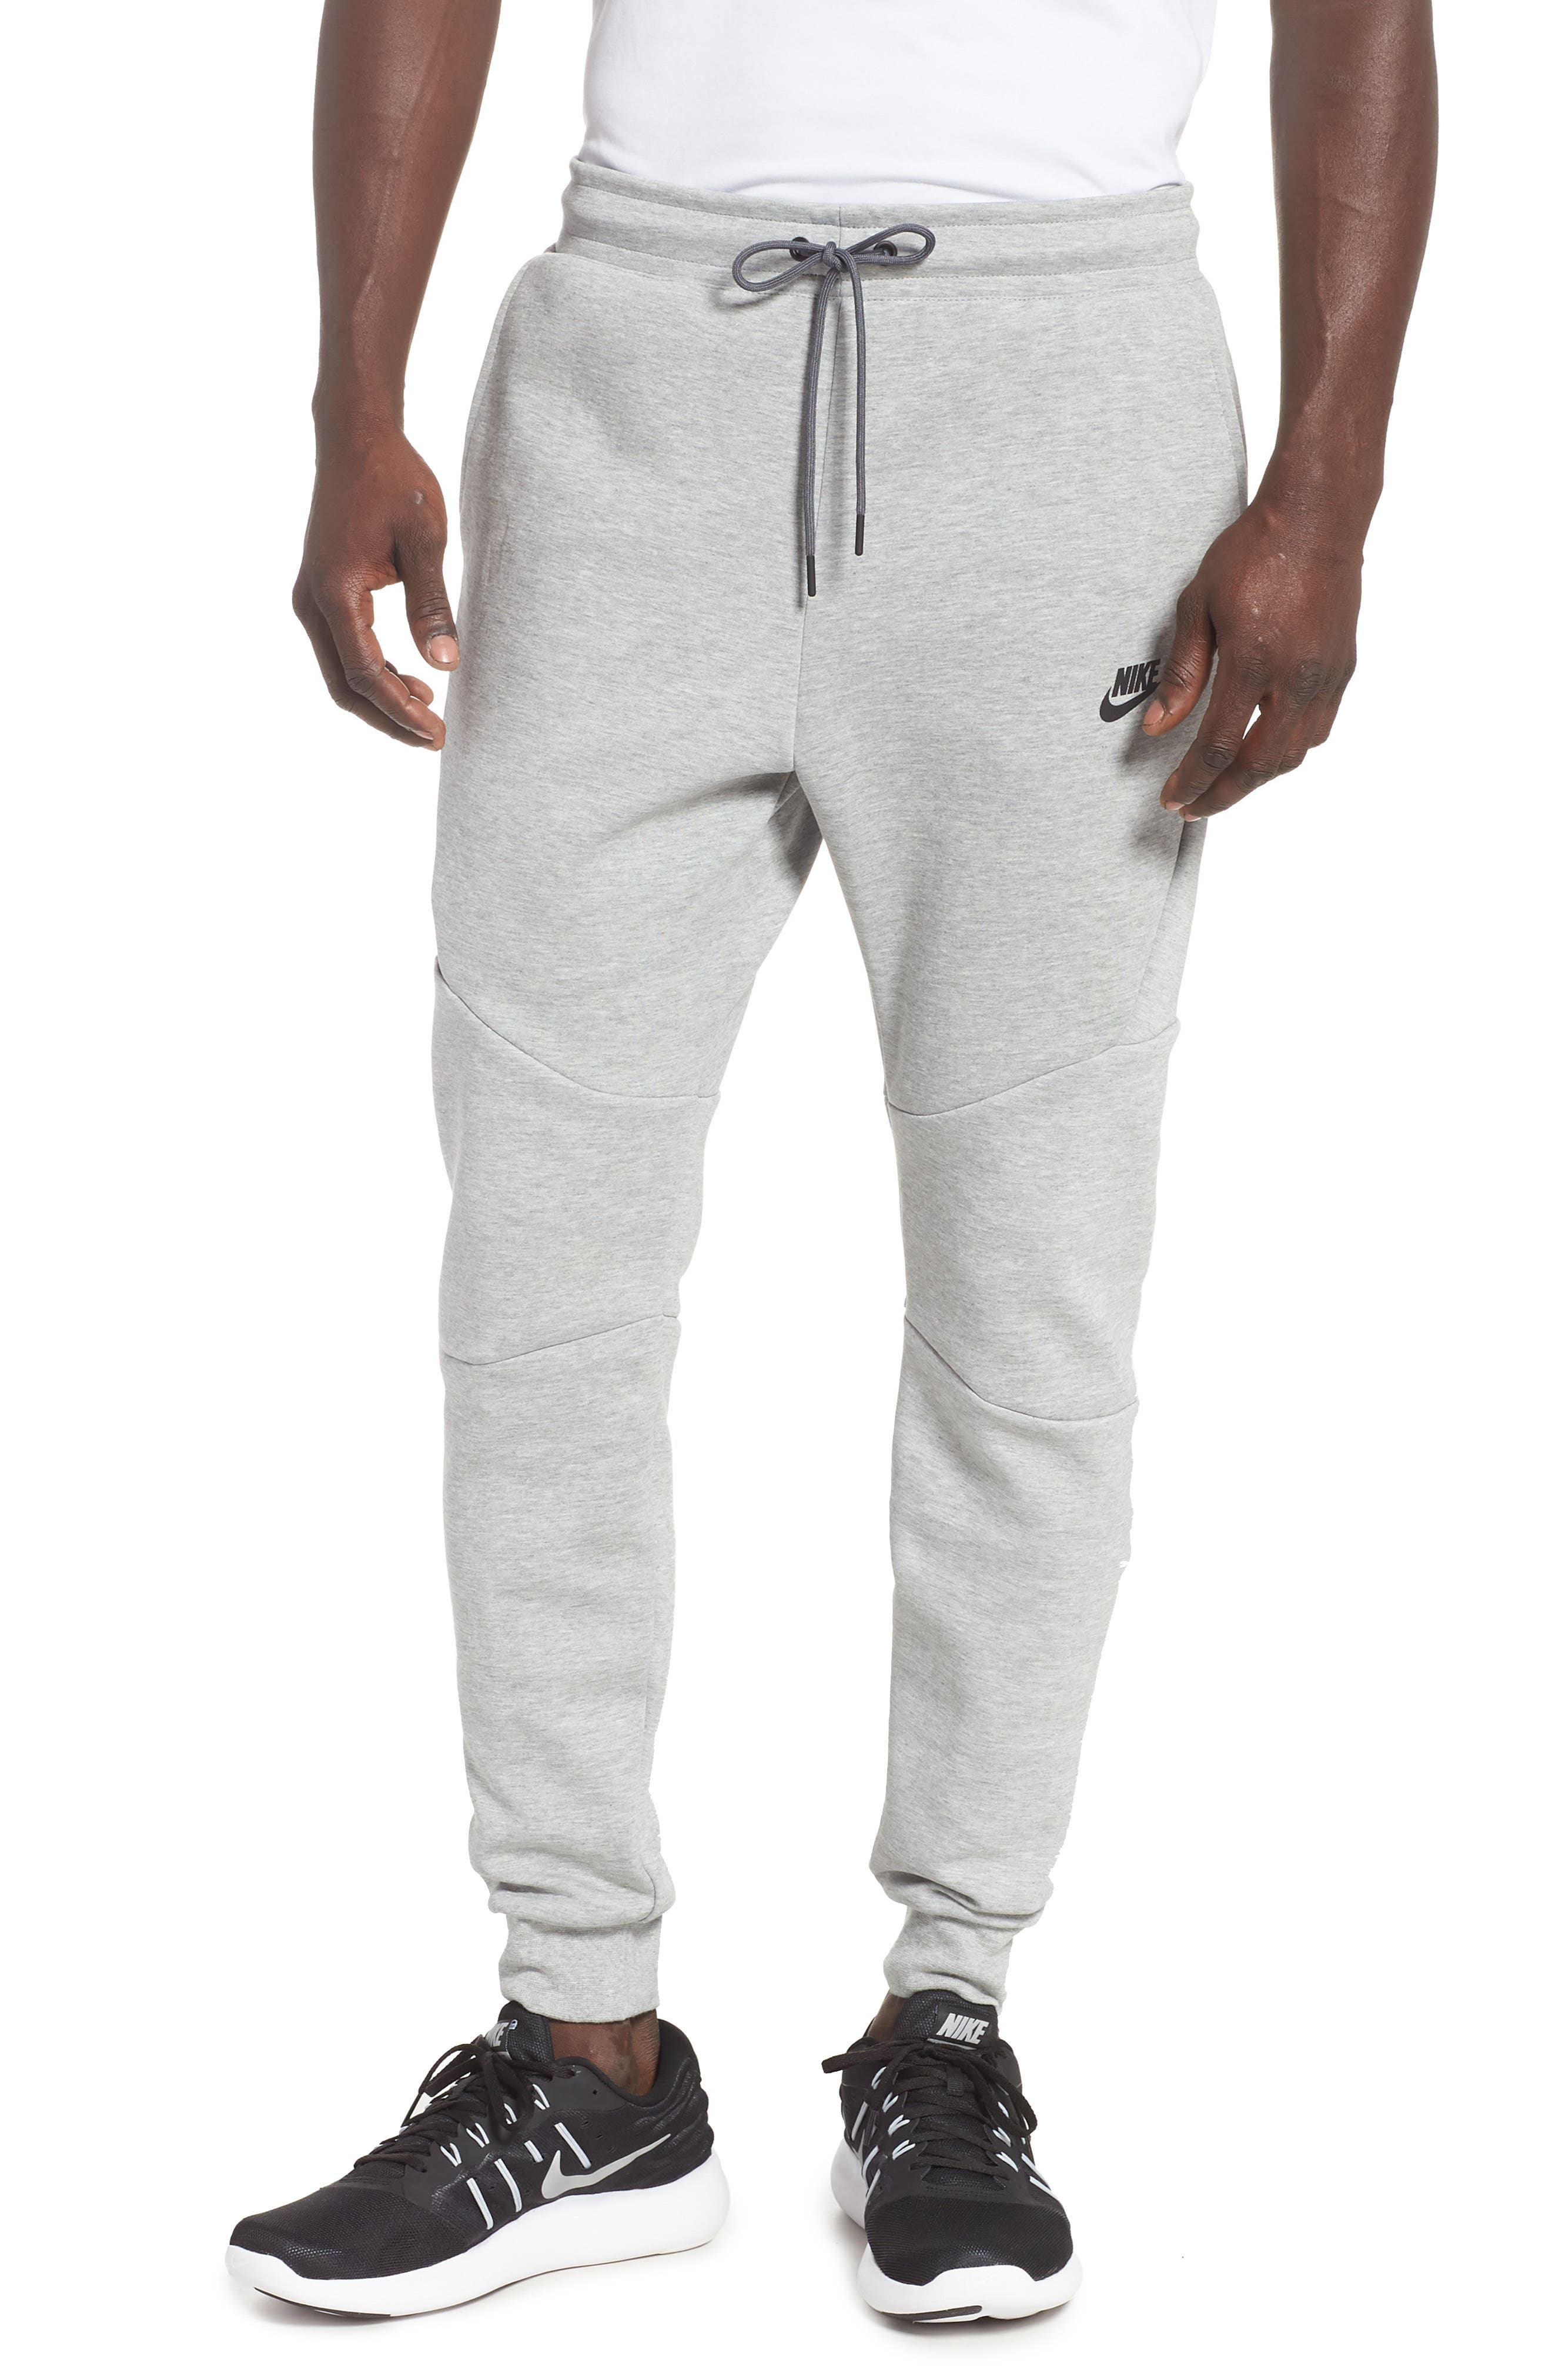 Activewear Mens Nike Tracksuit Bottoms Xxl Highly Polished Clothes, Shoes & Accessories